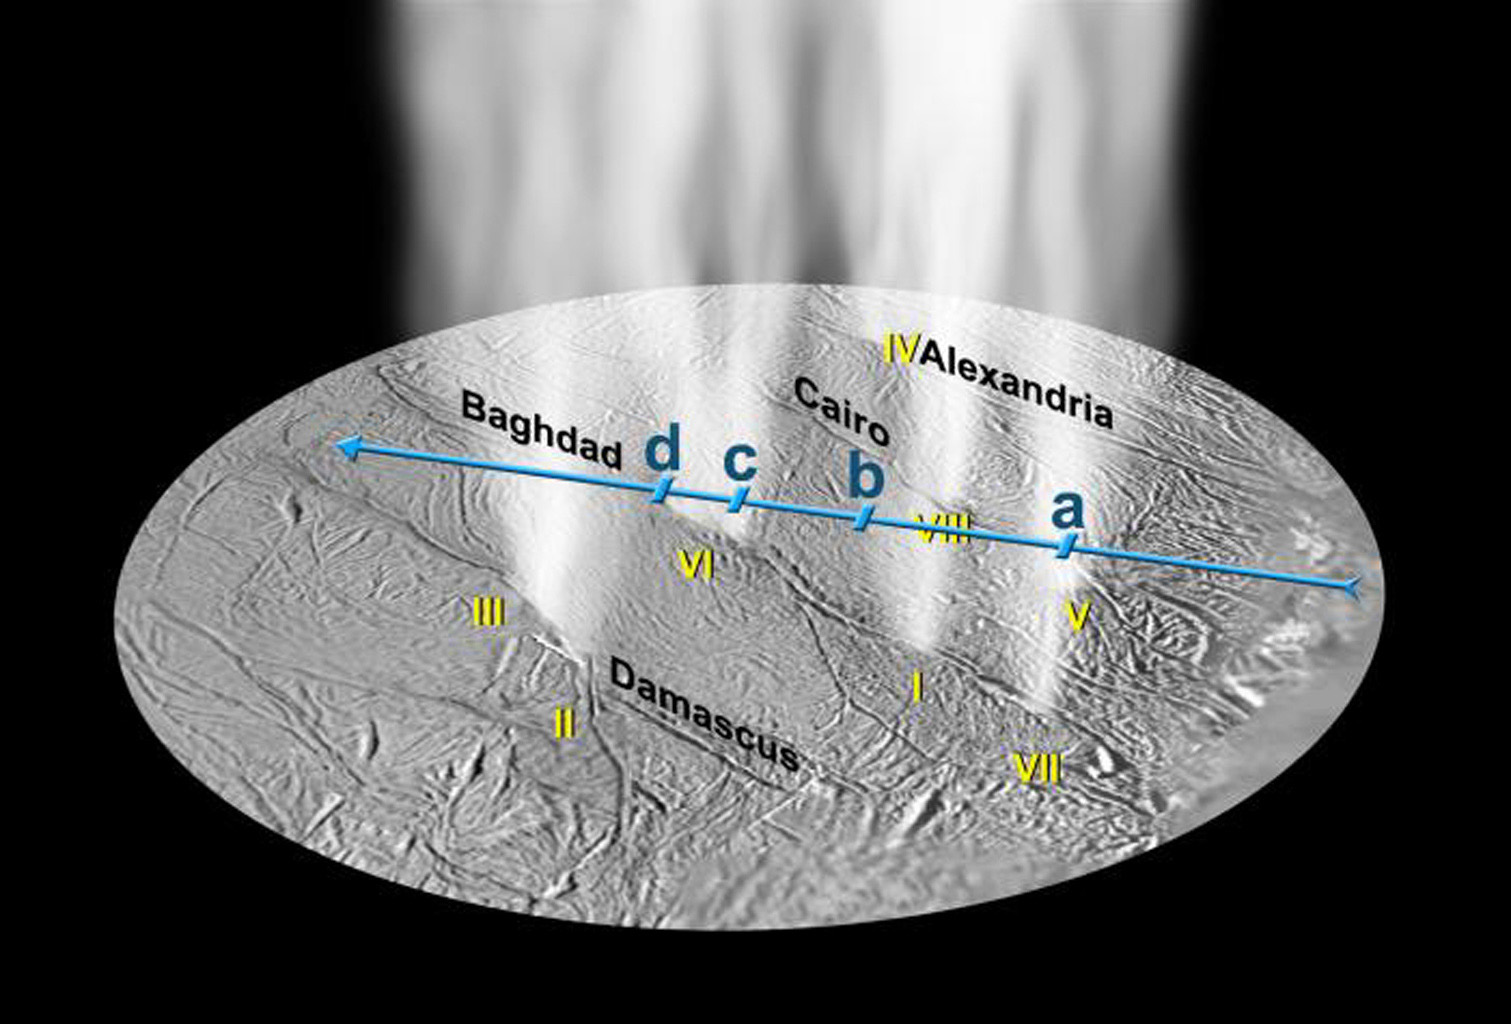 Jets of high-density gas detected by NASA's Cassini Ultraviolet Imaging Spectrograph on Saturn's moon Enceladus match the locations of dust jets determined from Cassini images, labeled here with Roman numerals.